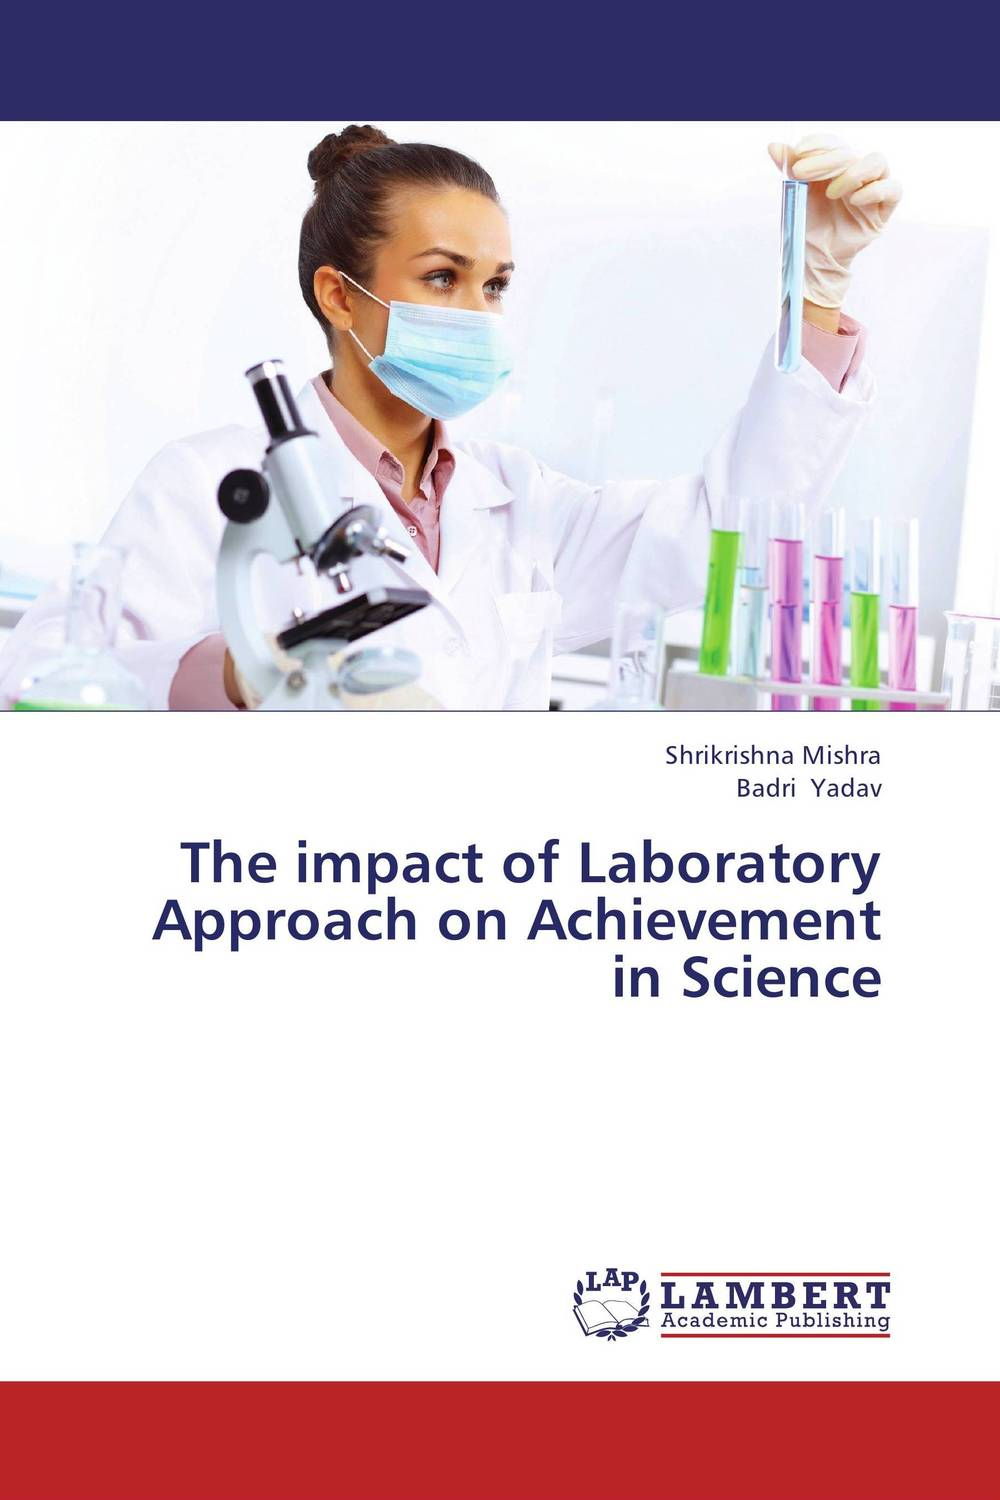 The impact of Laboratory Approach on Achievement  in Science